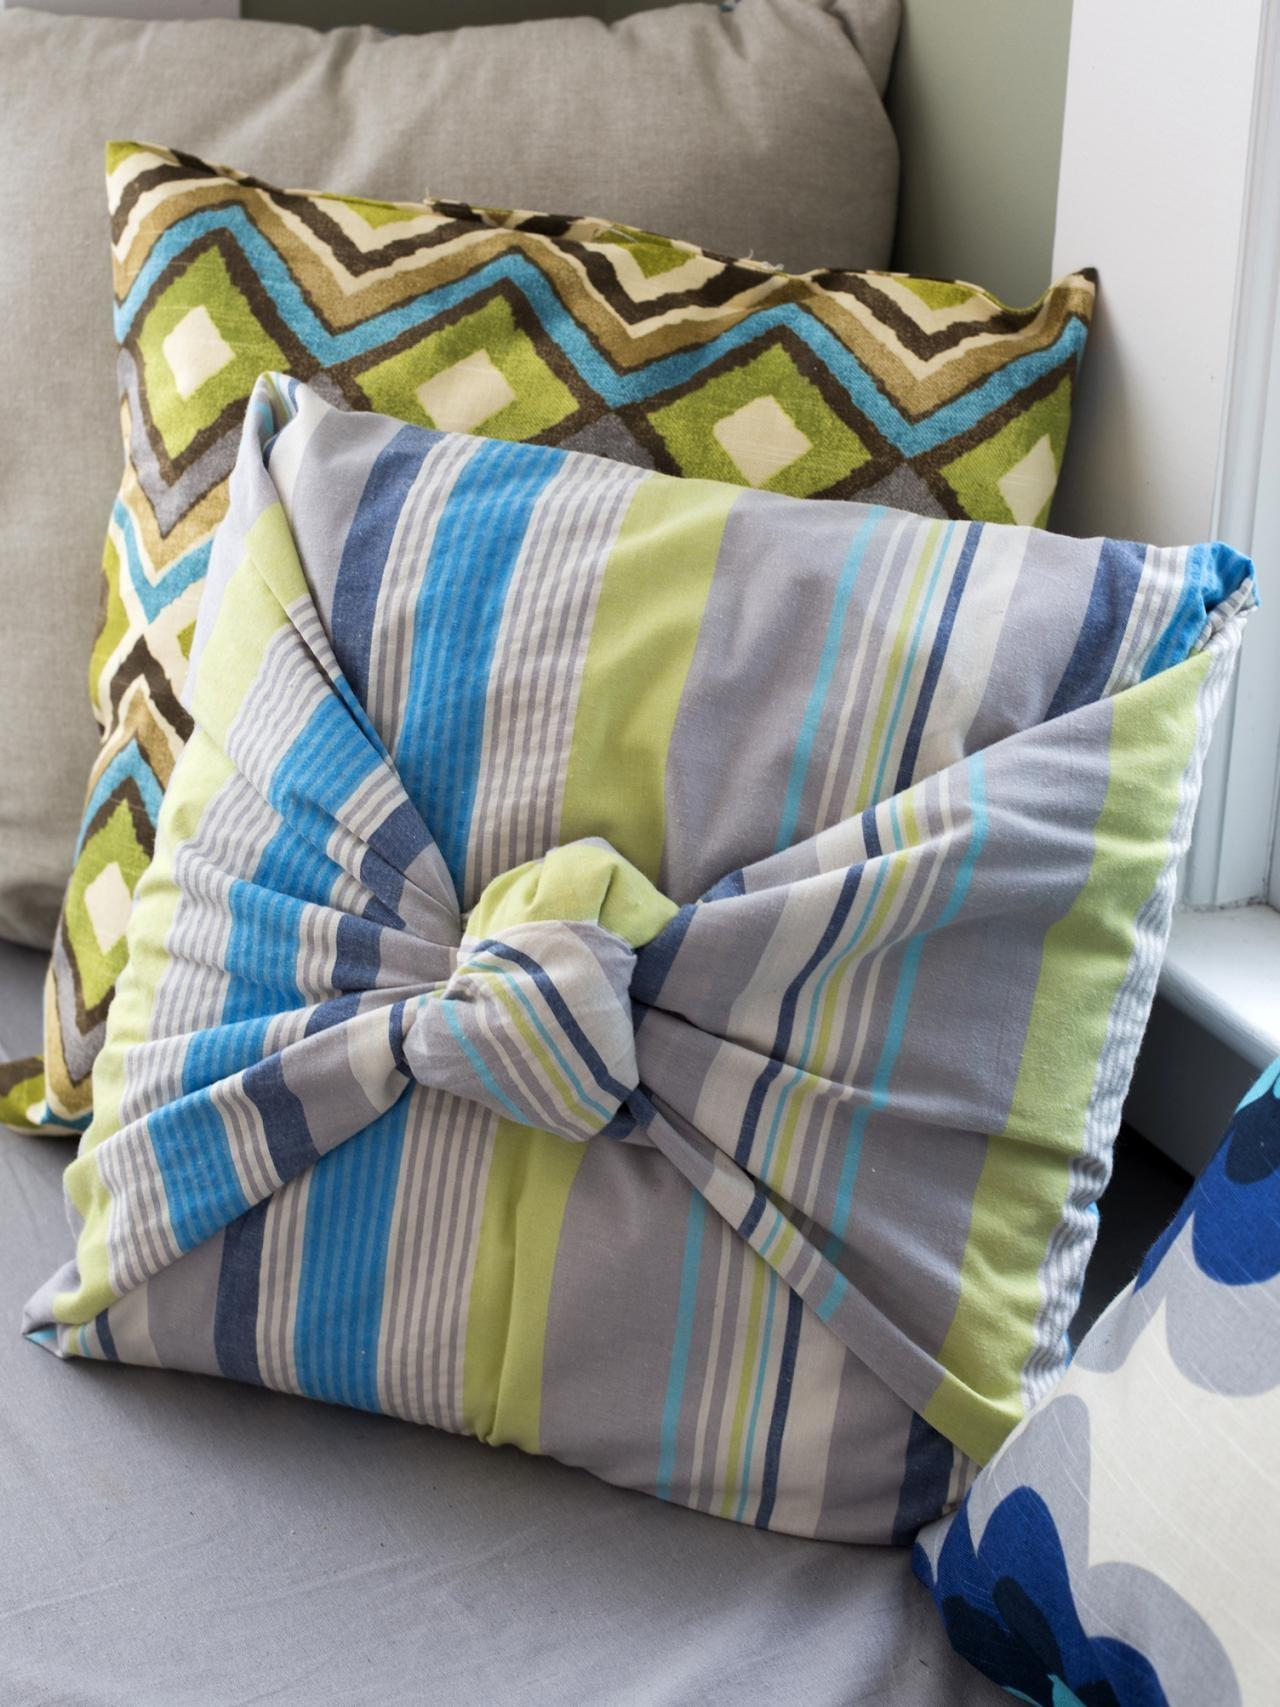 Make Throw Pillows Without Sewing Diy Home Decor